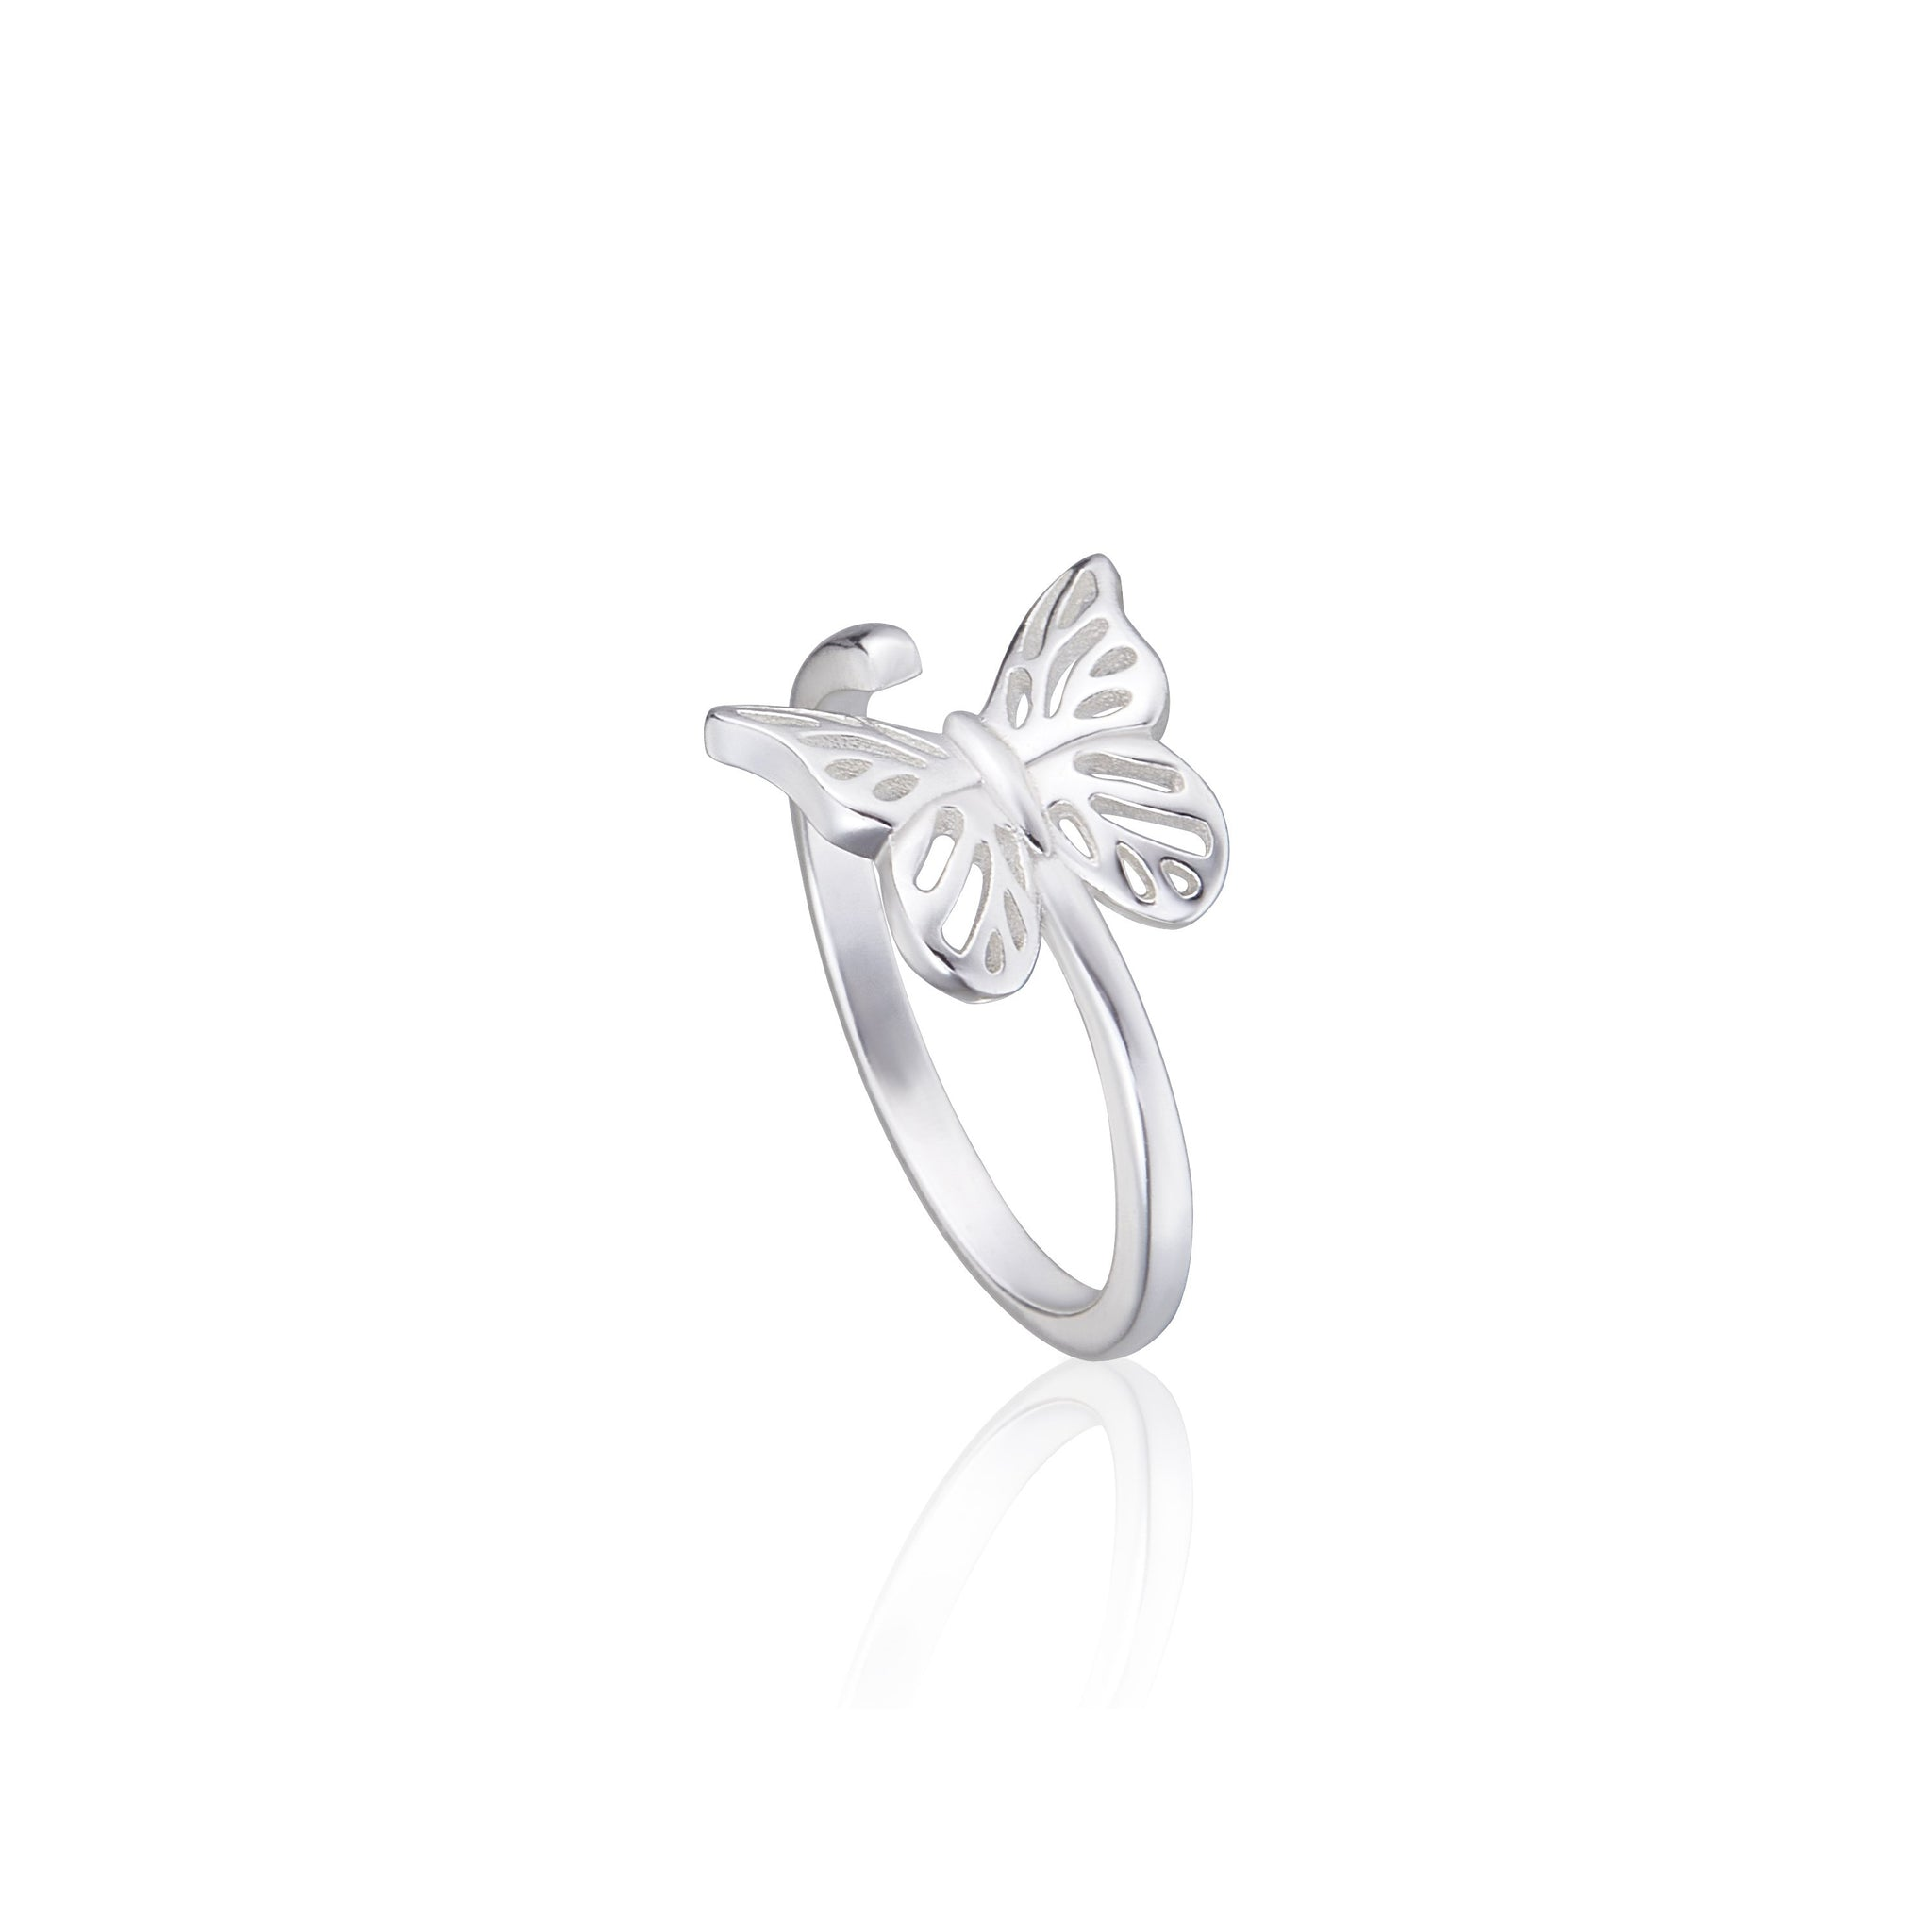 "化蝶飛吻 ""銀"" 戒指 - A Butterfly's Kiss ""Silver"" Ring"